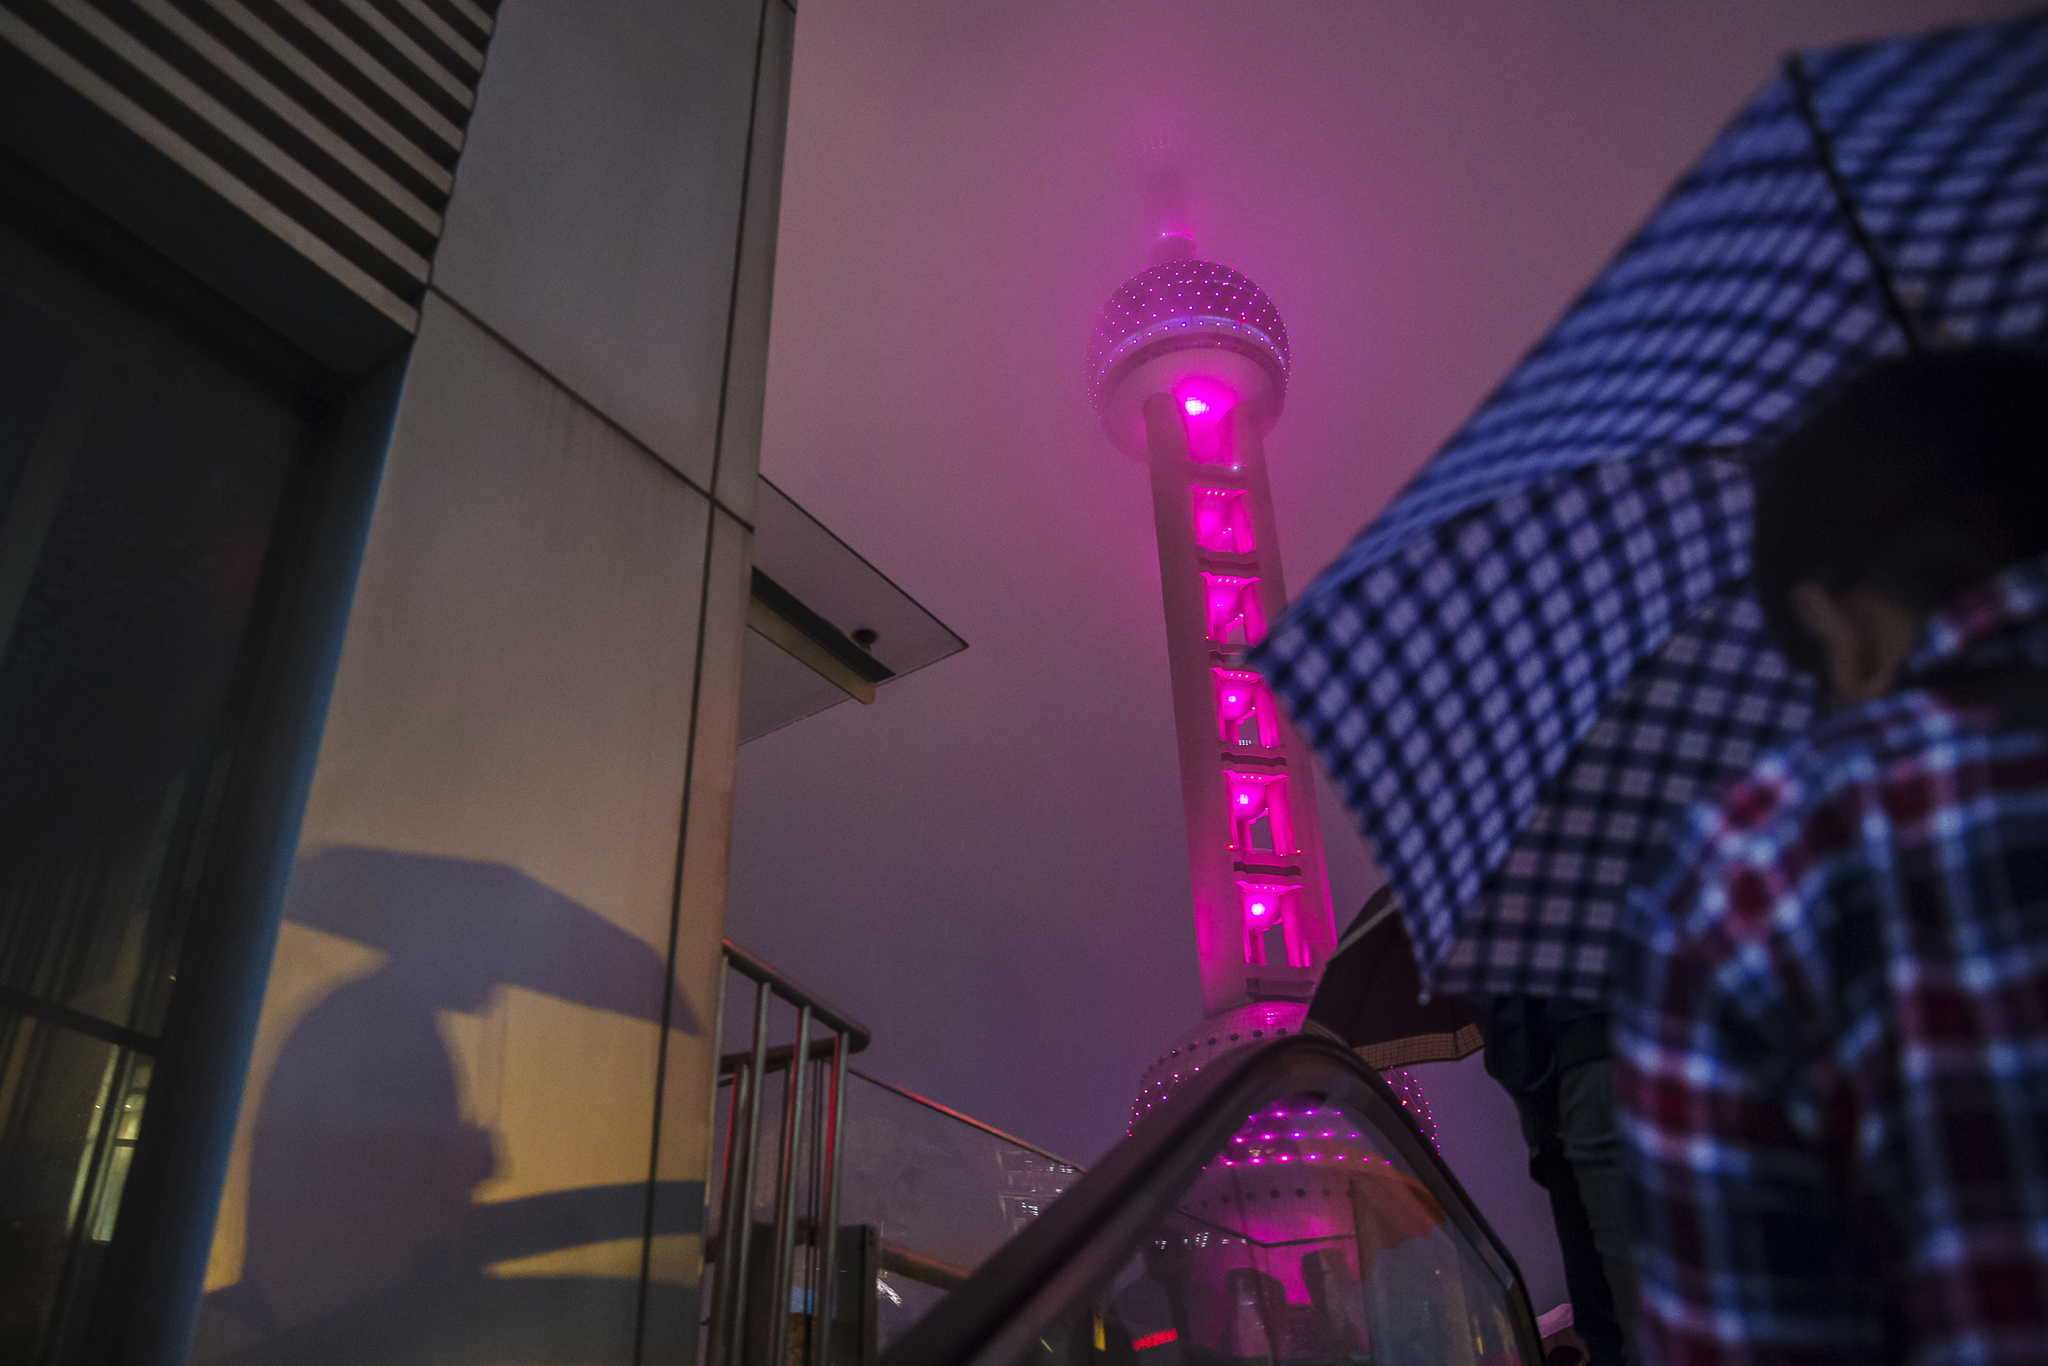 A pedestrian holding an umbrella rides up an escalator as the Oriental Pearl Tower stands illuminated at night